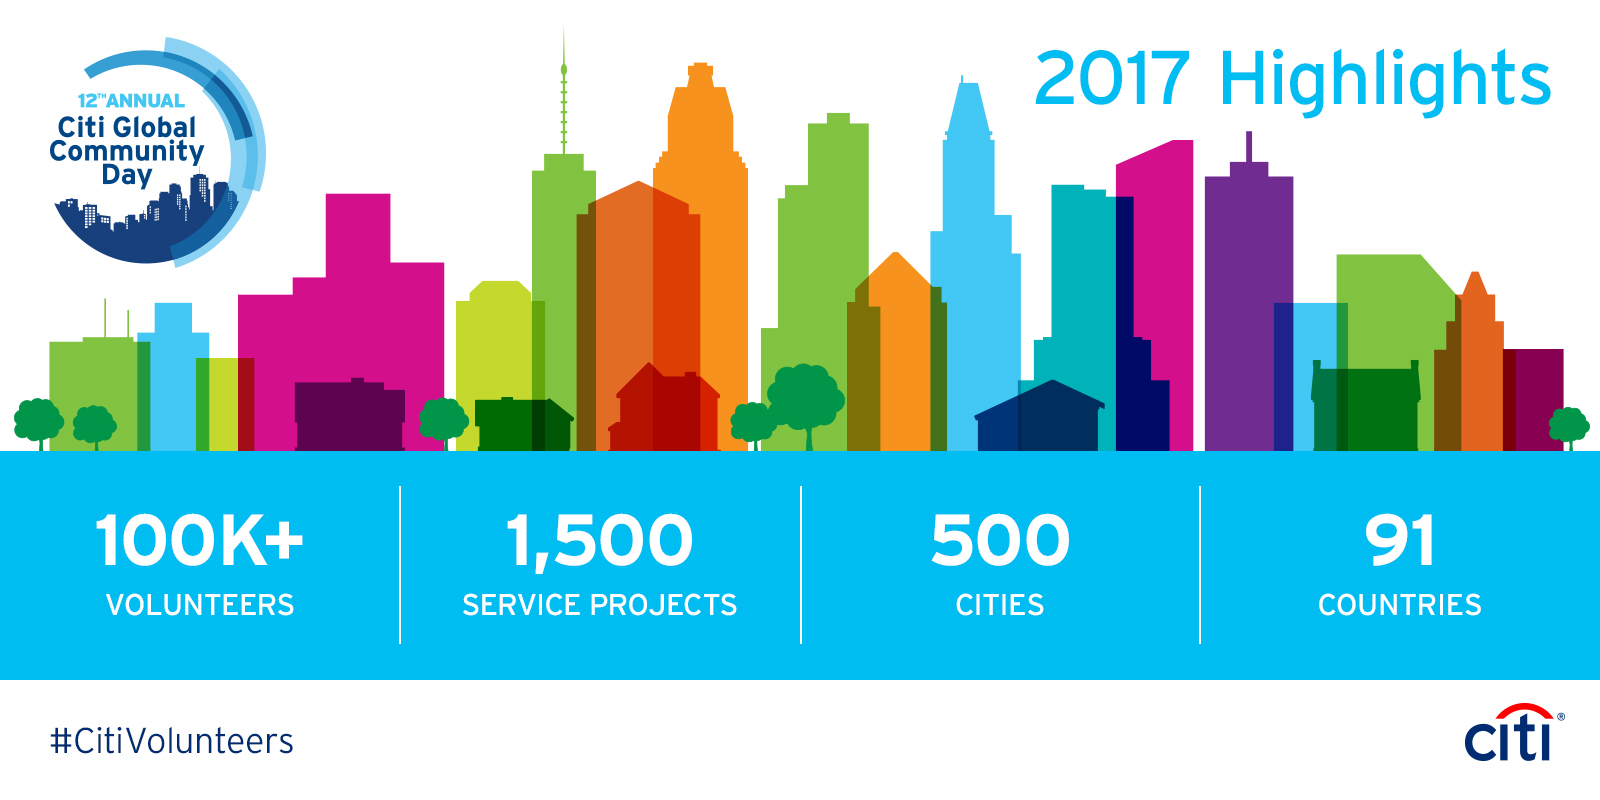 More than 100,000 volunteers take part in Citi's 12th annual Global Community Day. Follow #CitiVolunteers for more! (Photo: Business Wire)